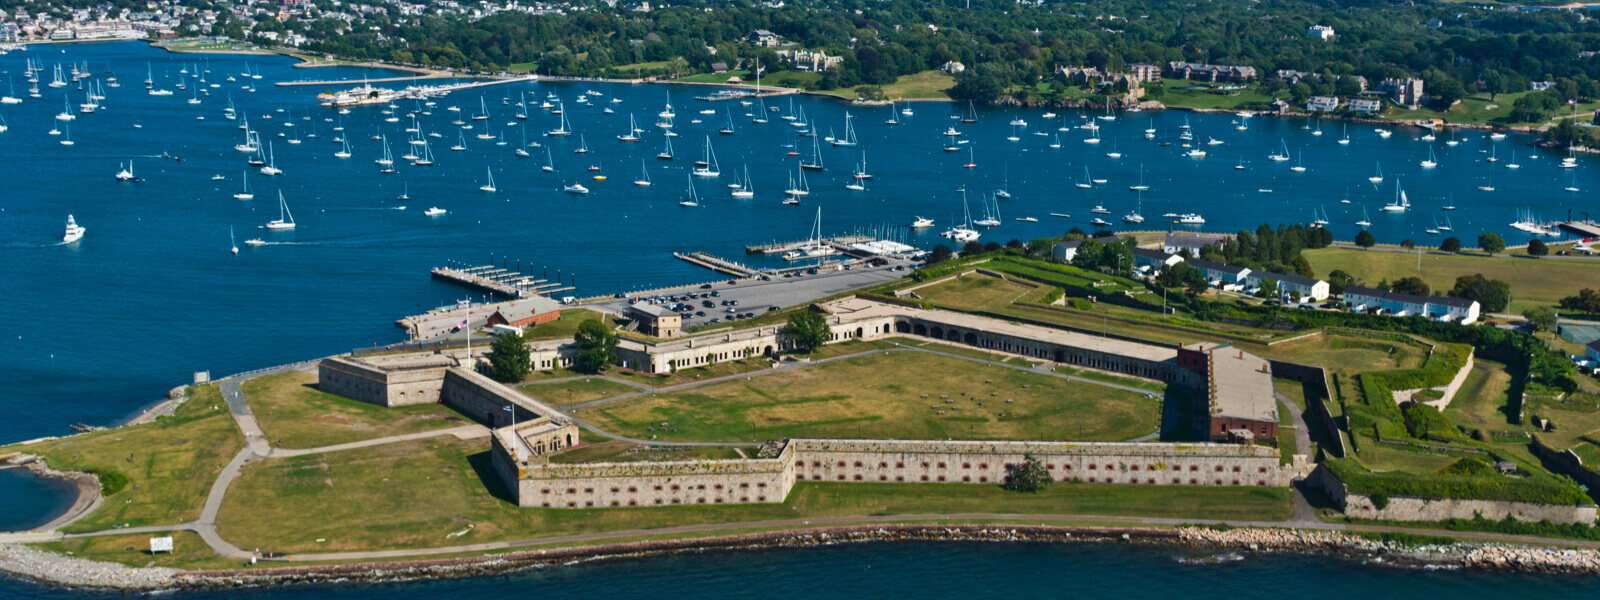 YachtLife's top Yachting Activities in Newport - Fort Adams